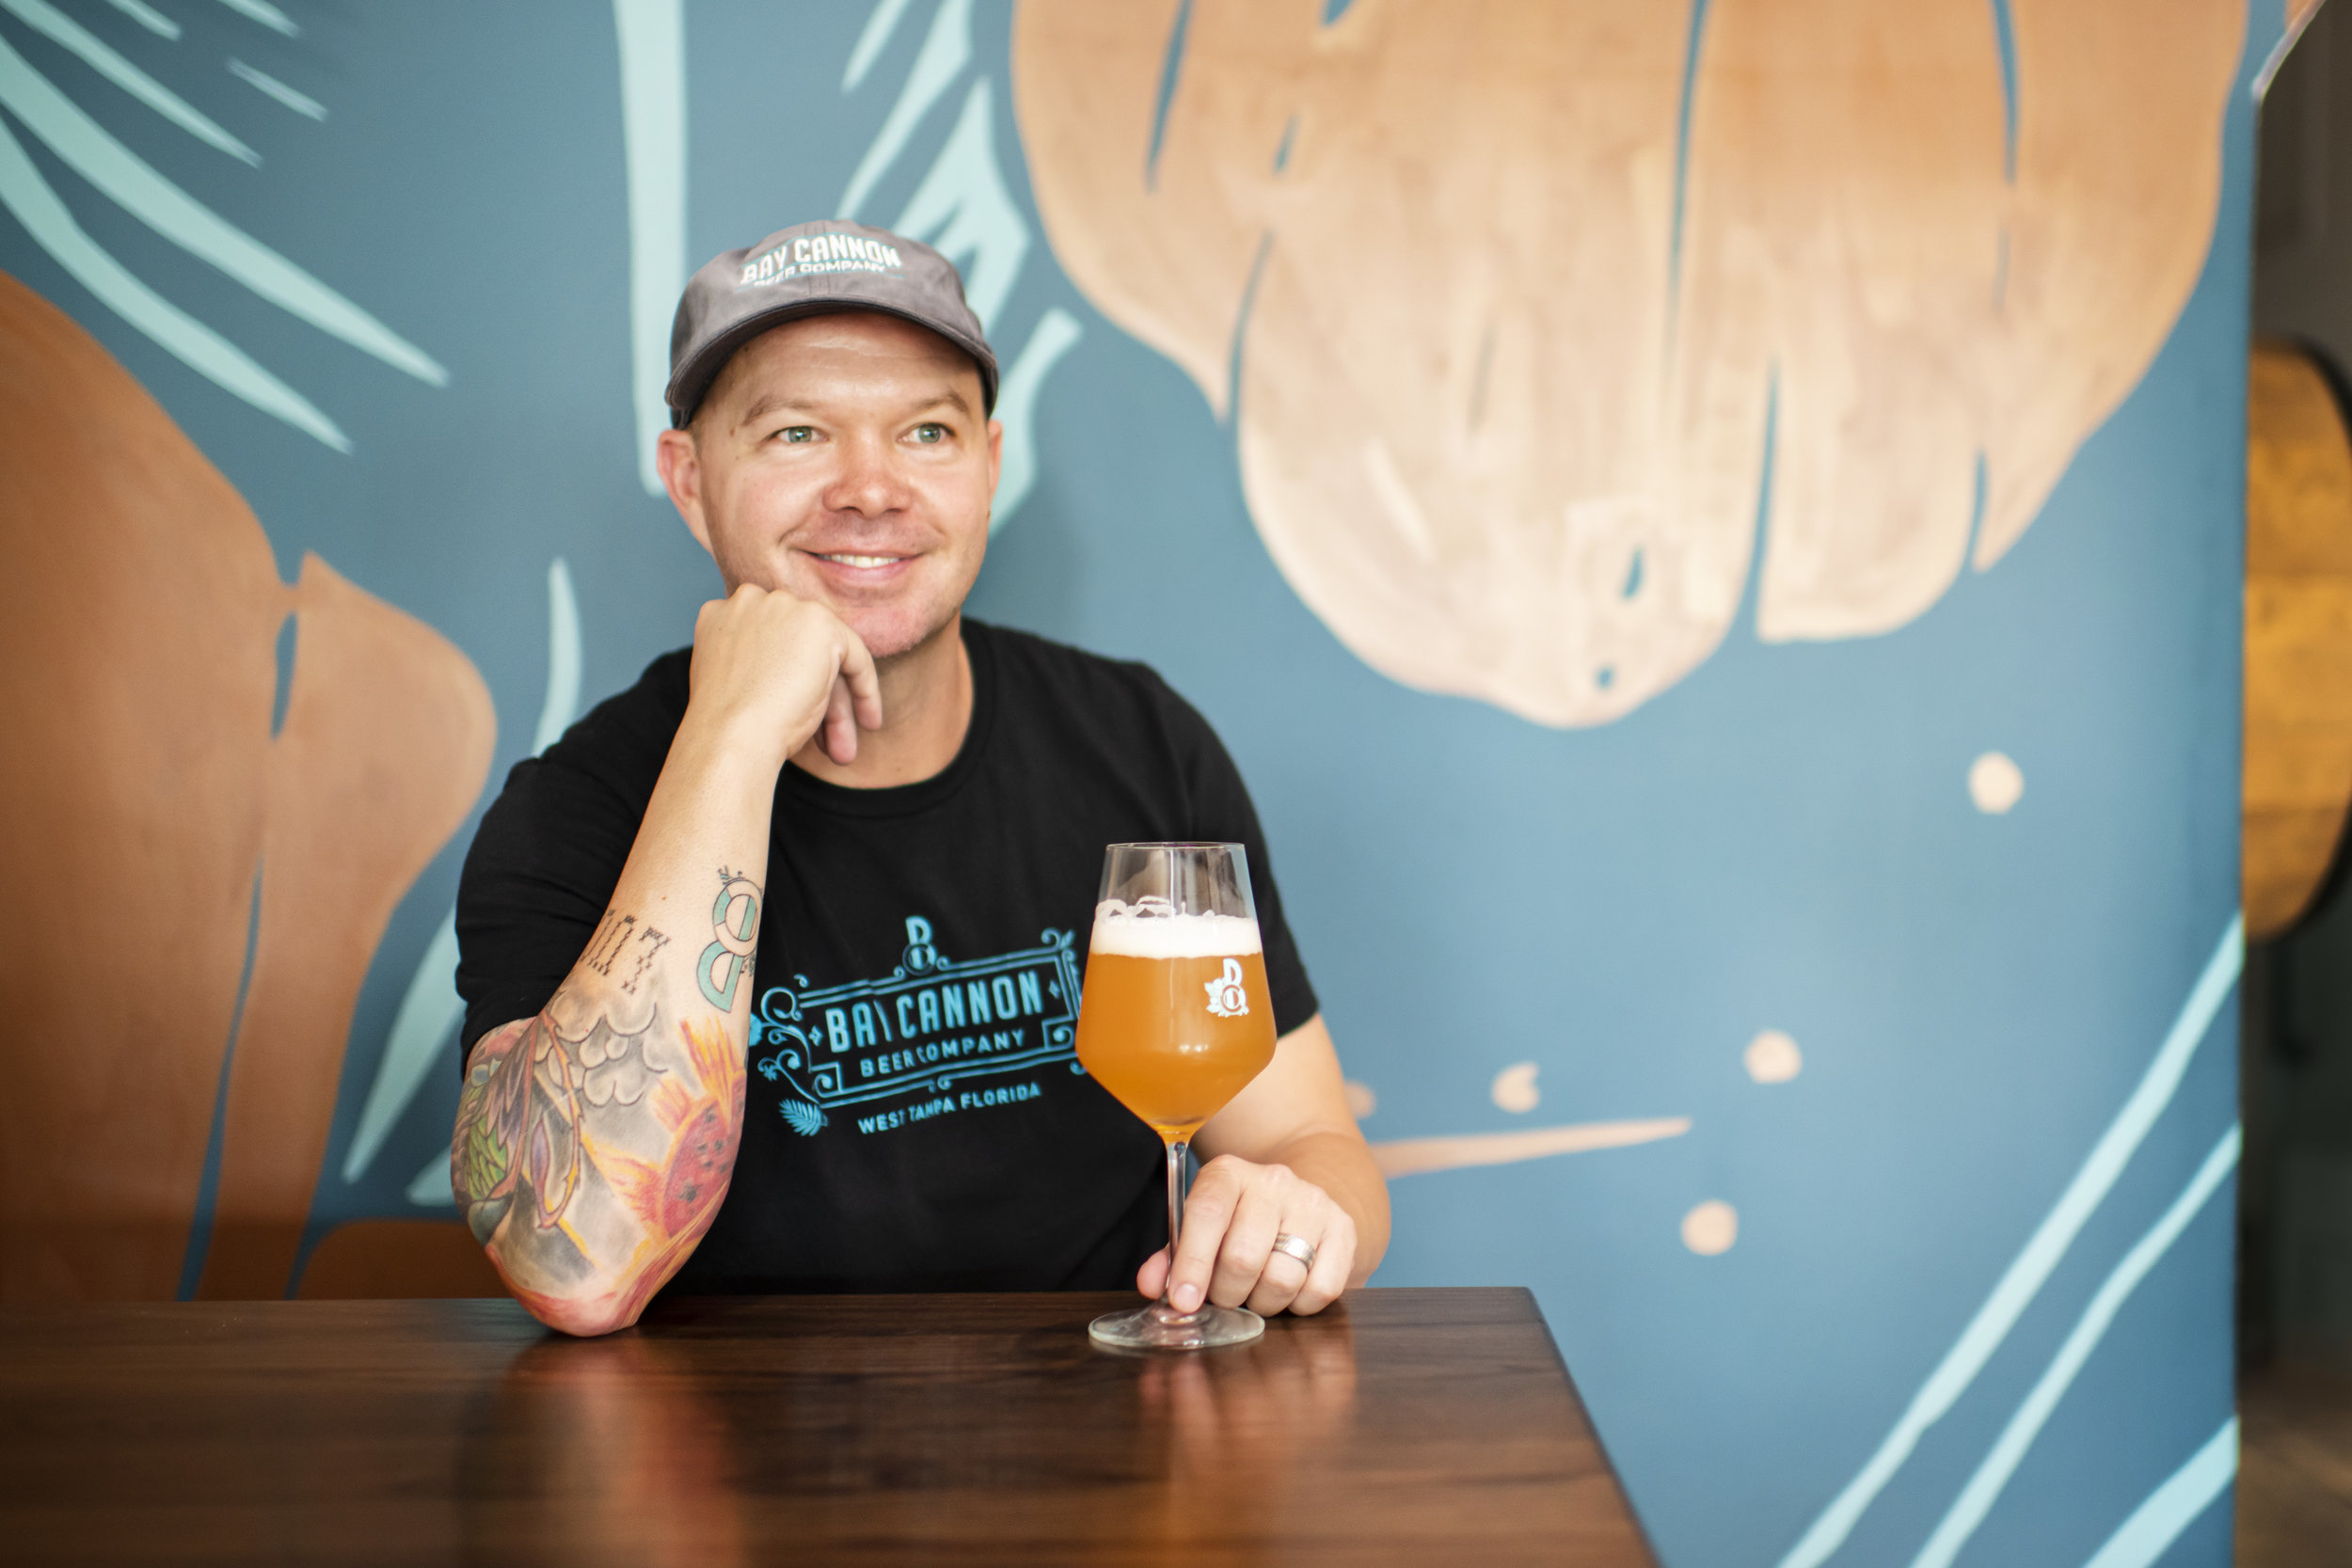 MEET MATTHEW, CO-FOUNDER AND COO. COME INTO THE BREWERY AND SAY HELLO, HE'LL TELL YOU ALL ABOUT WHAT'S ON TAP & ALWAYS HAPPY TO TALK FSU OR VIKINGS FOOTBALL.